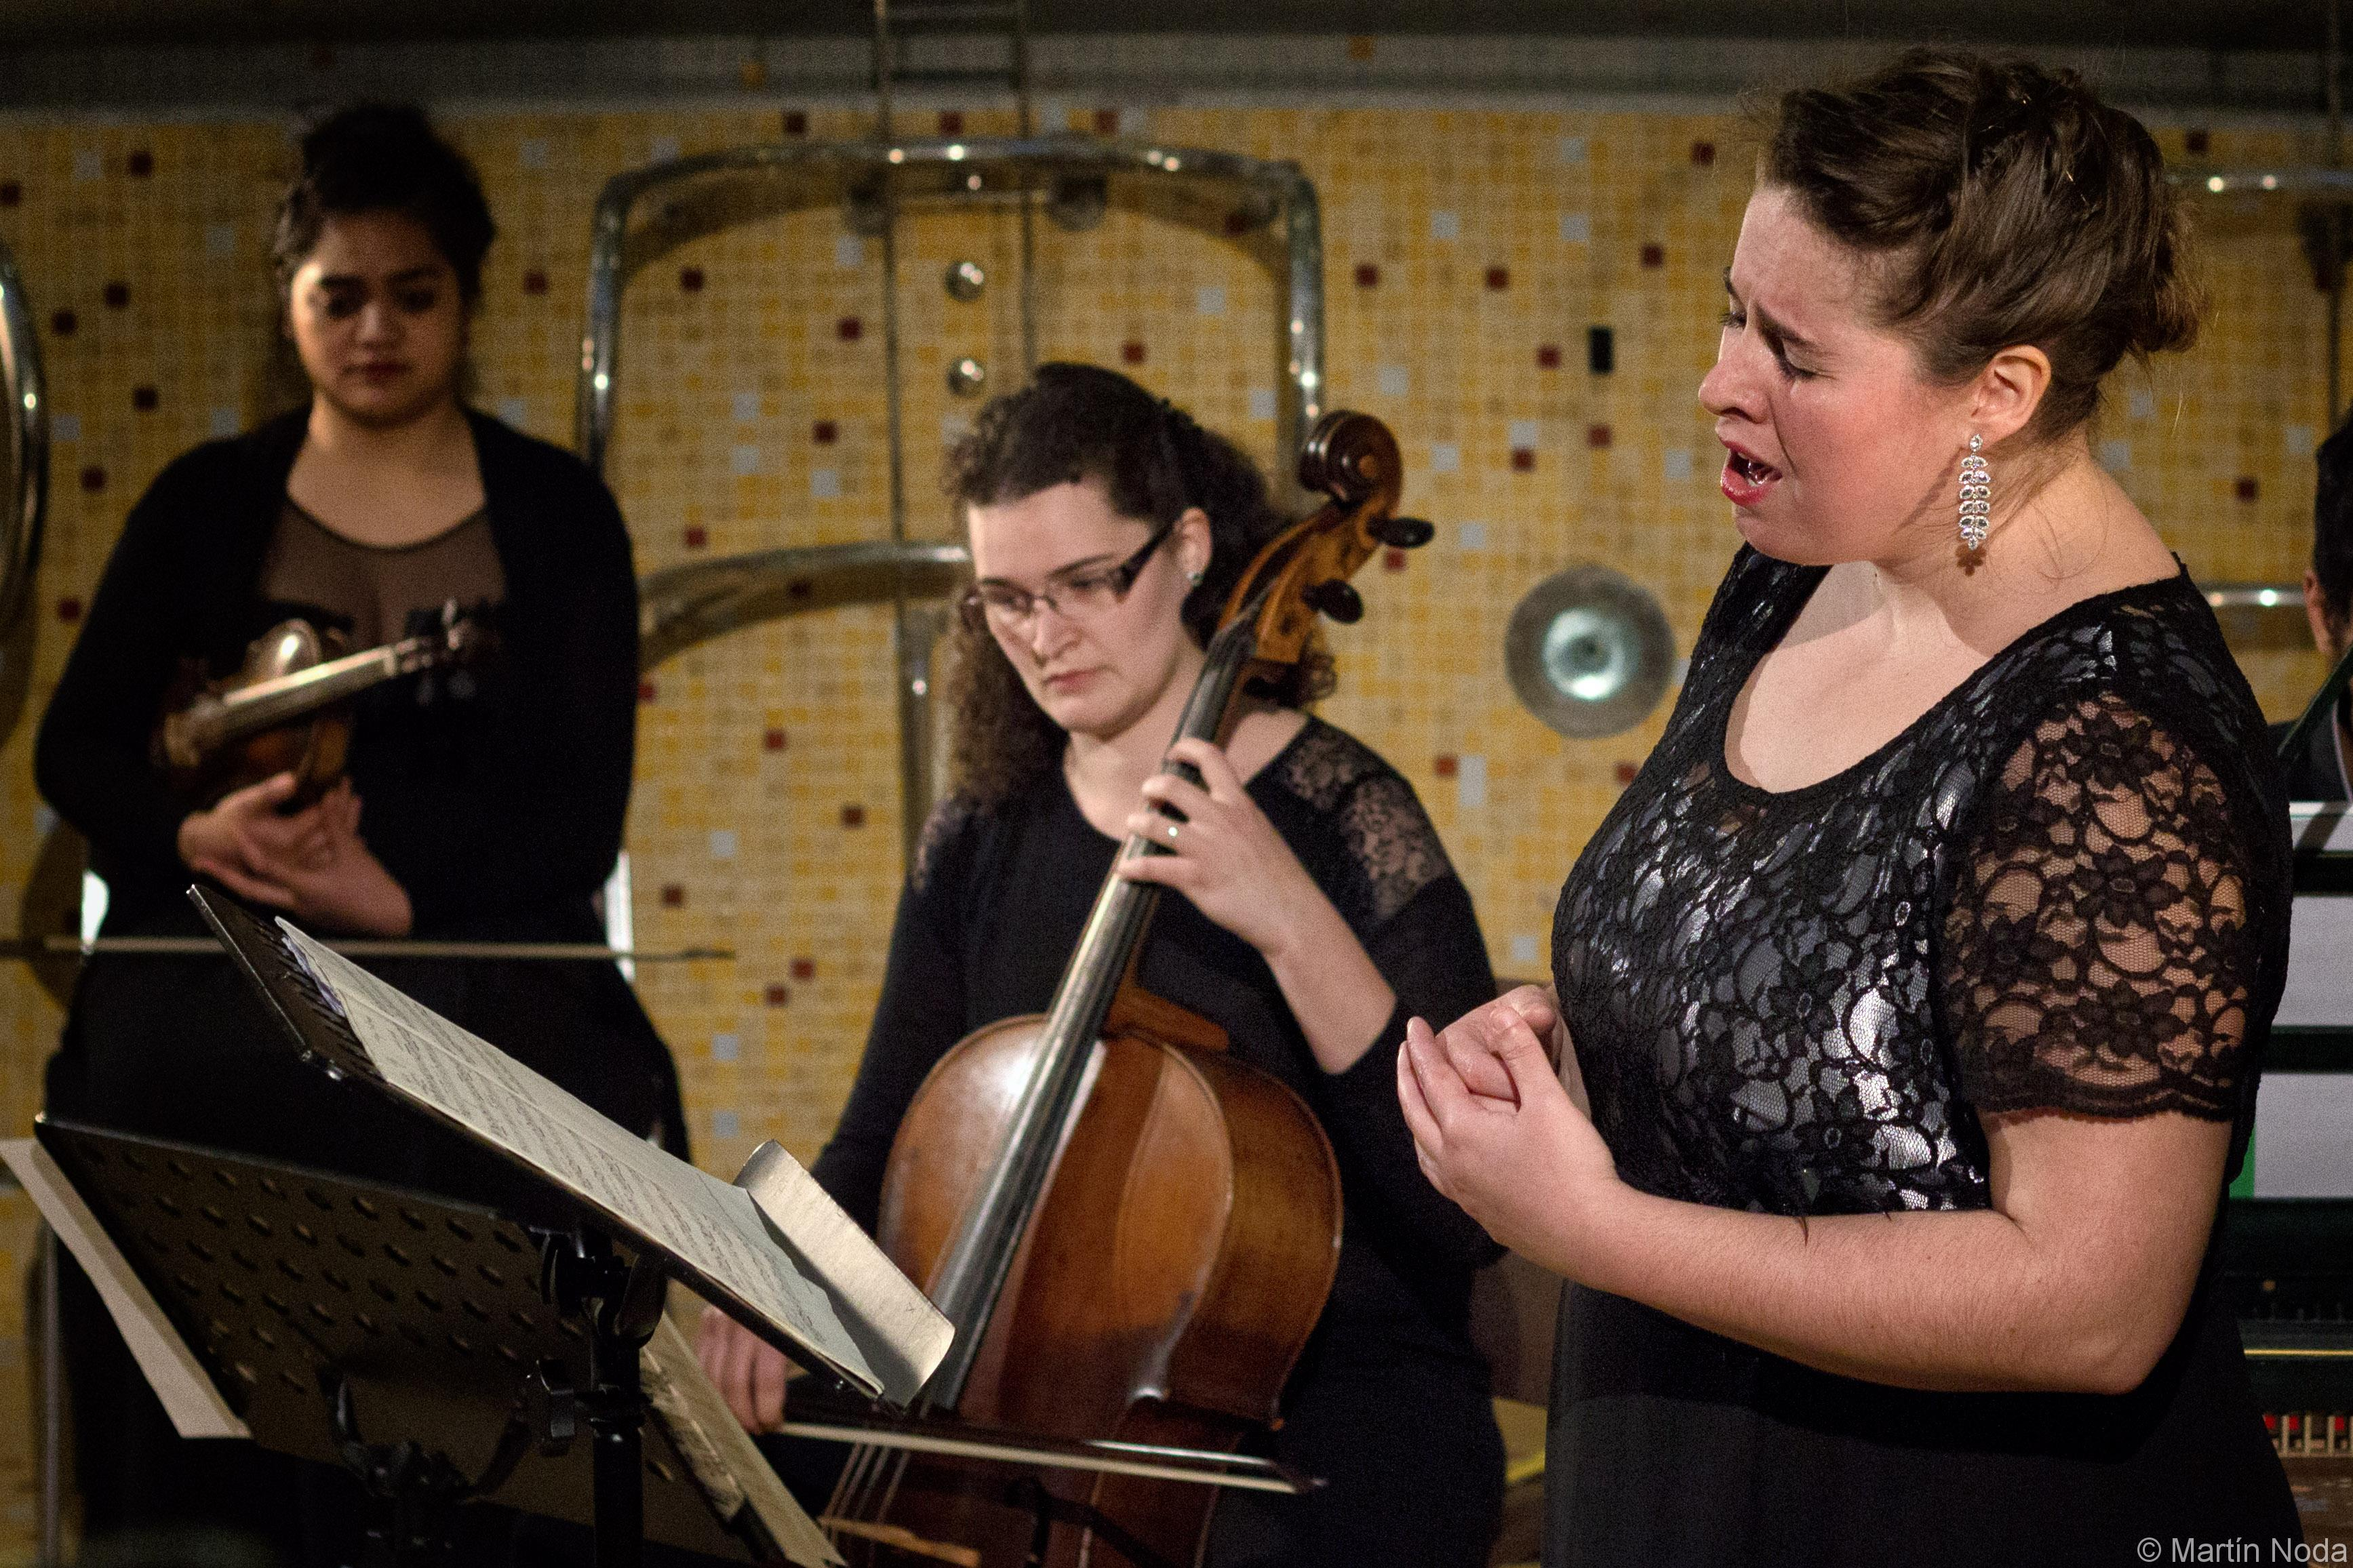 5 avril, Anciens Thermes Nationaux, Alice Lestang et Tania-Lio